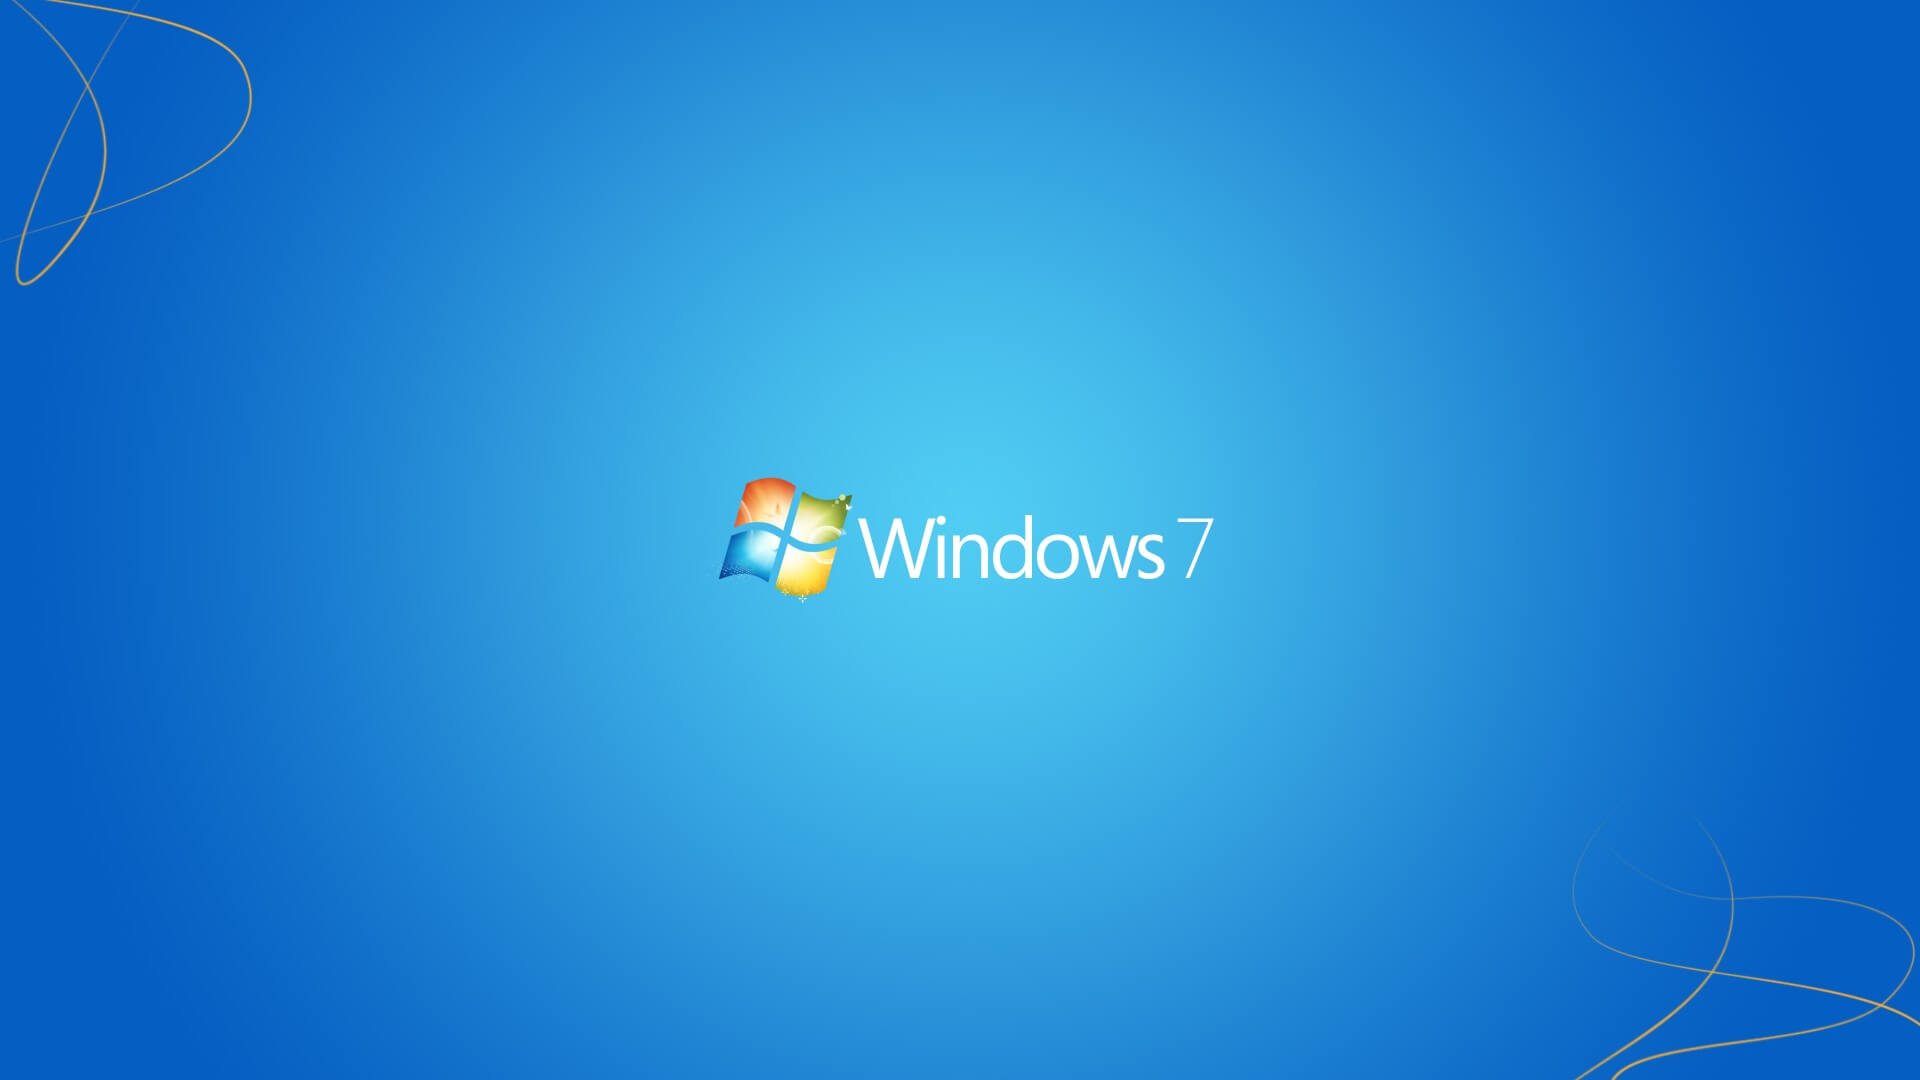 Windows 7 for gaming